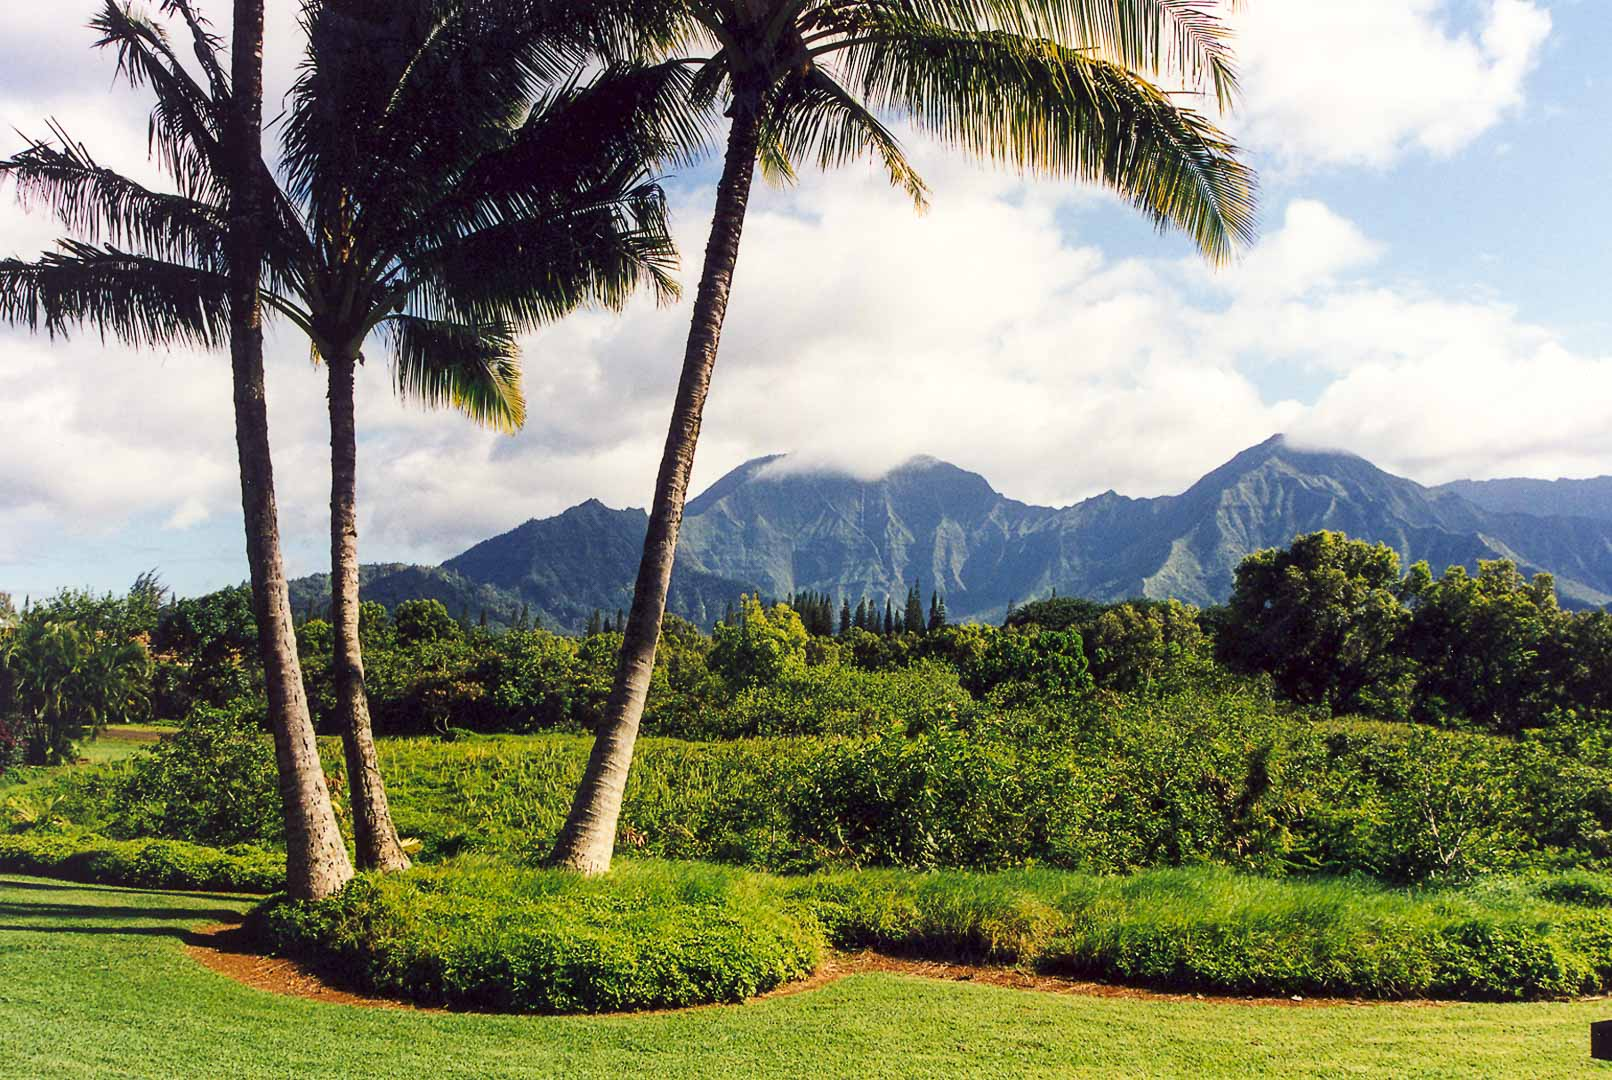 The beautiful view from VRI's Alii Kai Resort in Hawaii